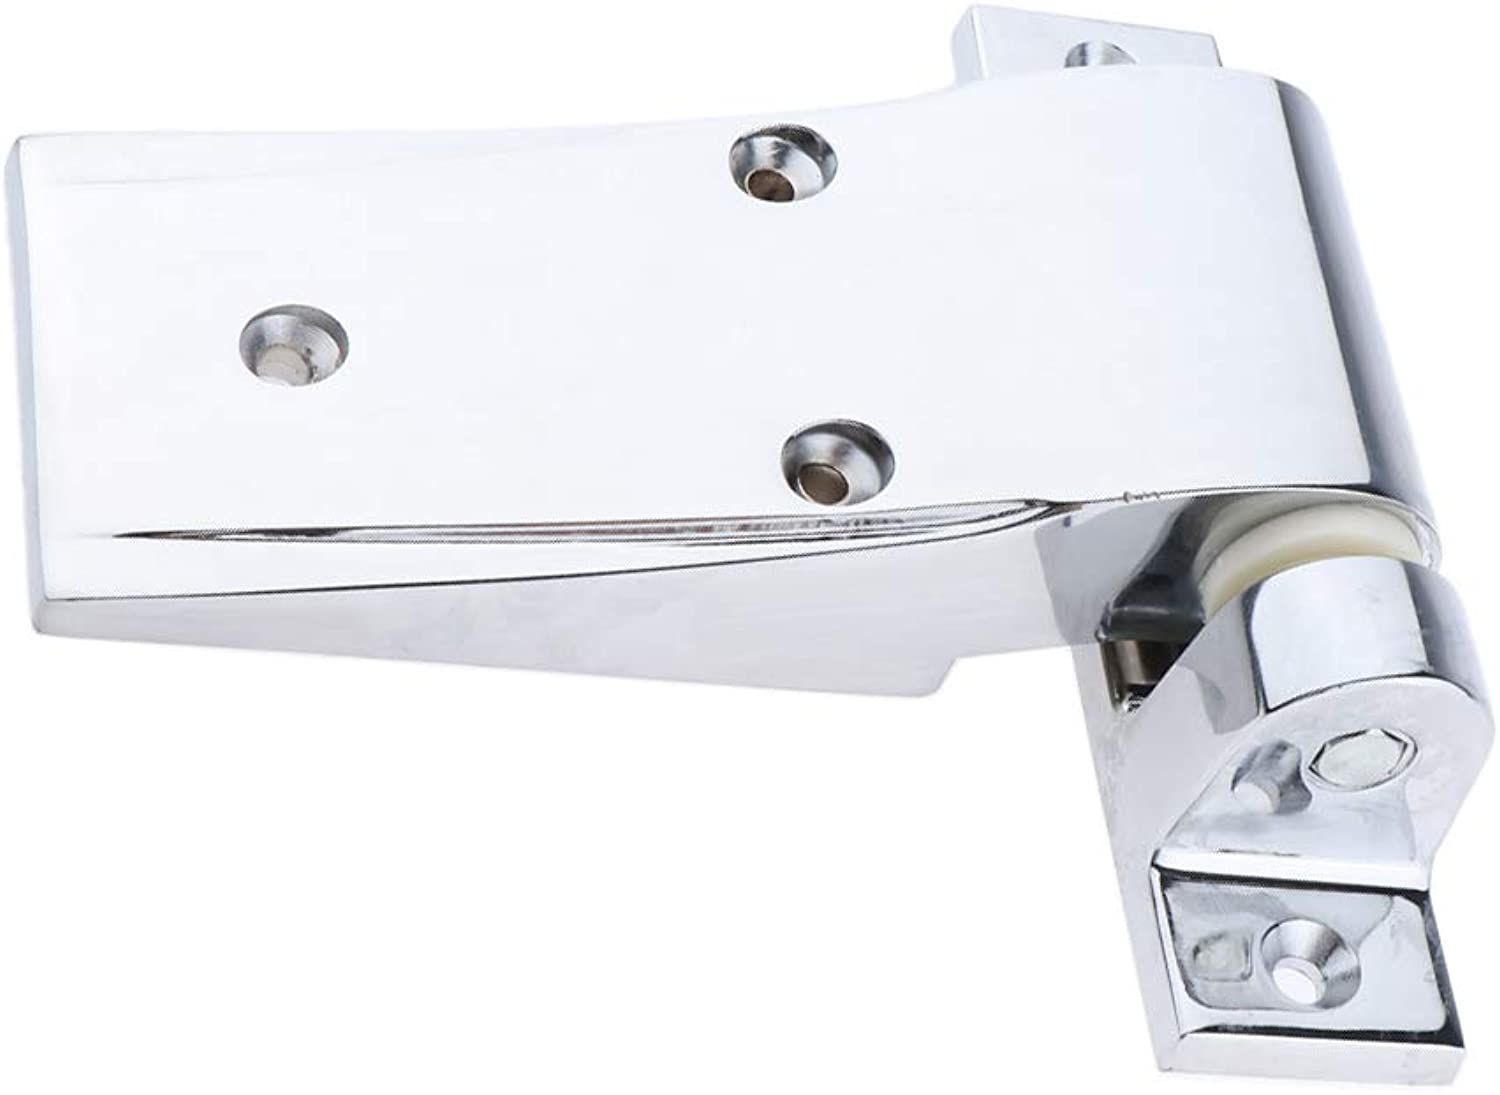 D DOLITY Right Side Door Hinge 180 Degree redation Zinc Alloy Durable SK2201RA